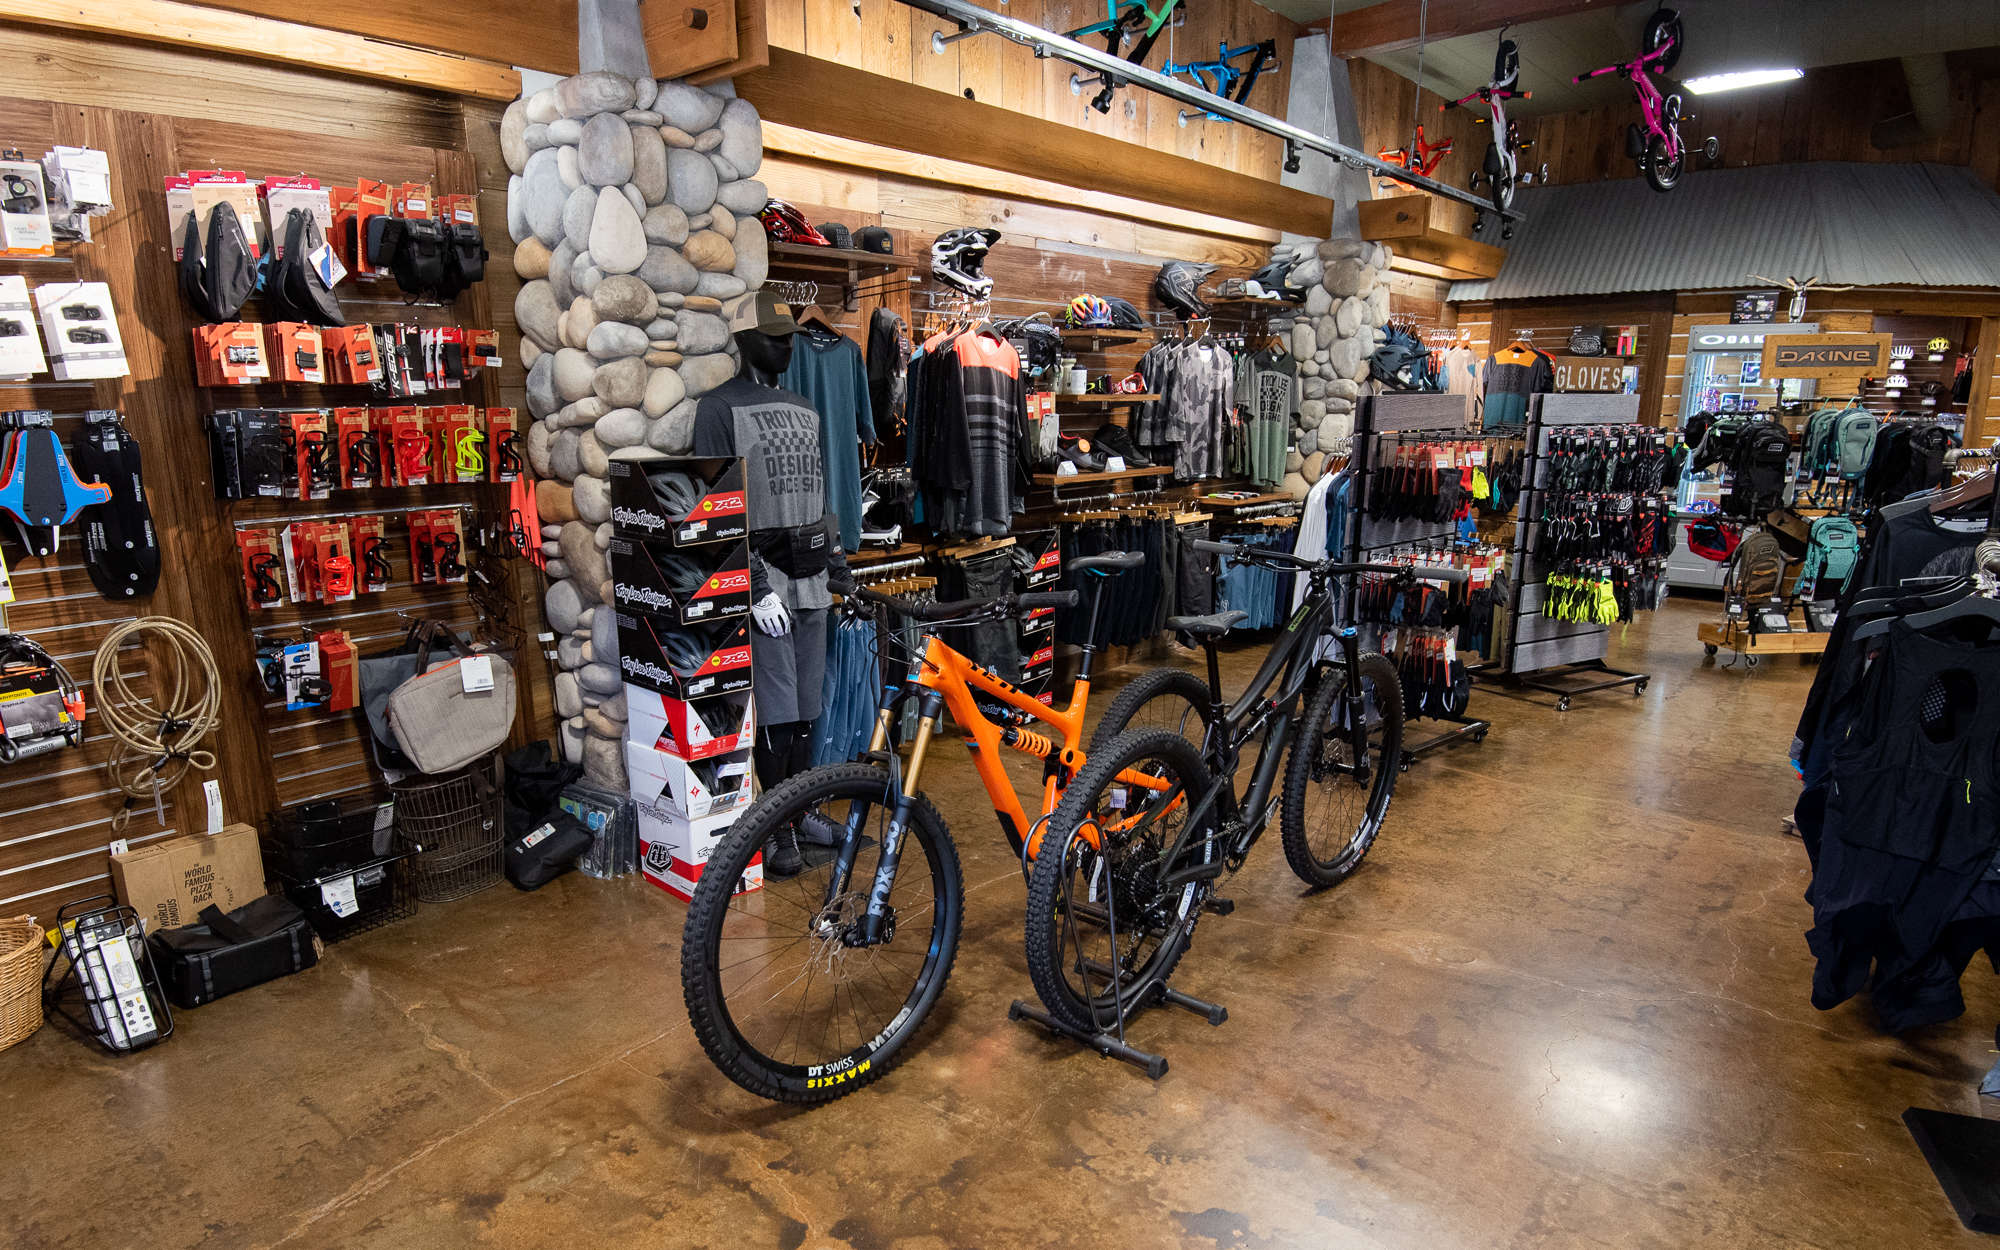 Inside of trail head cyclery with bikes and accesories